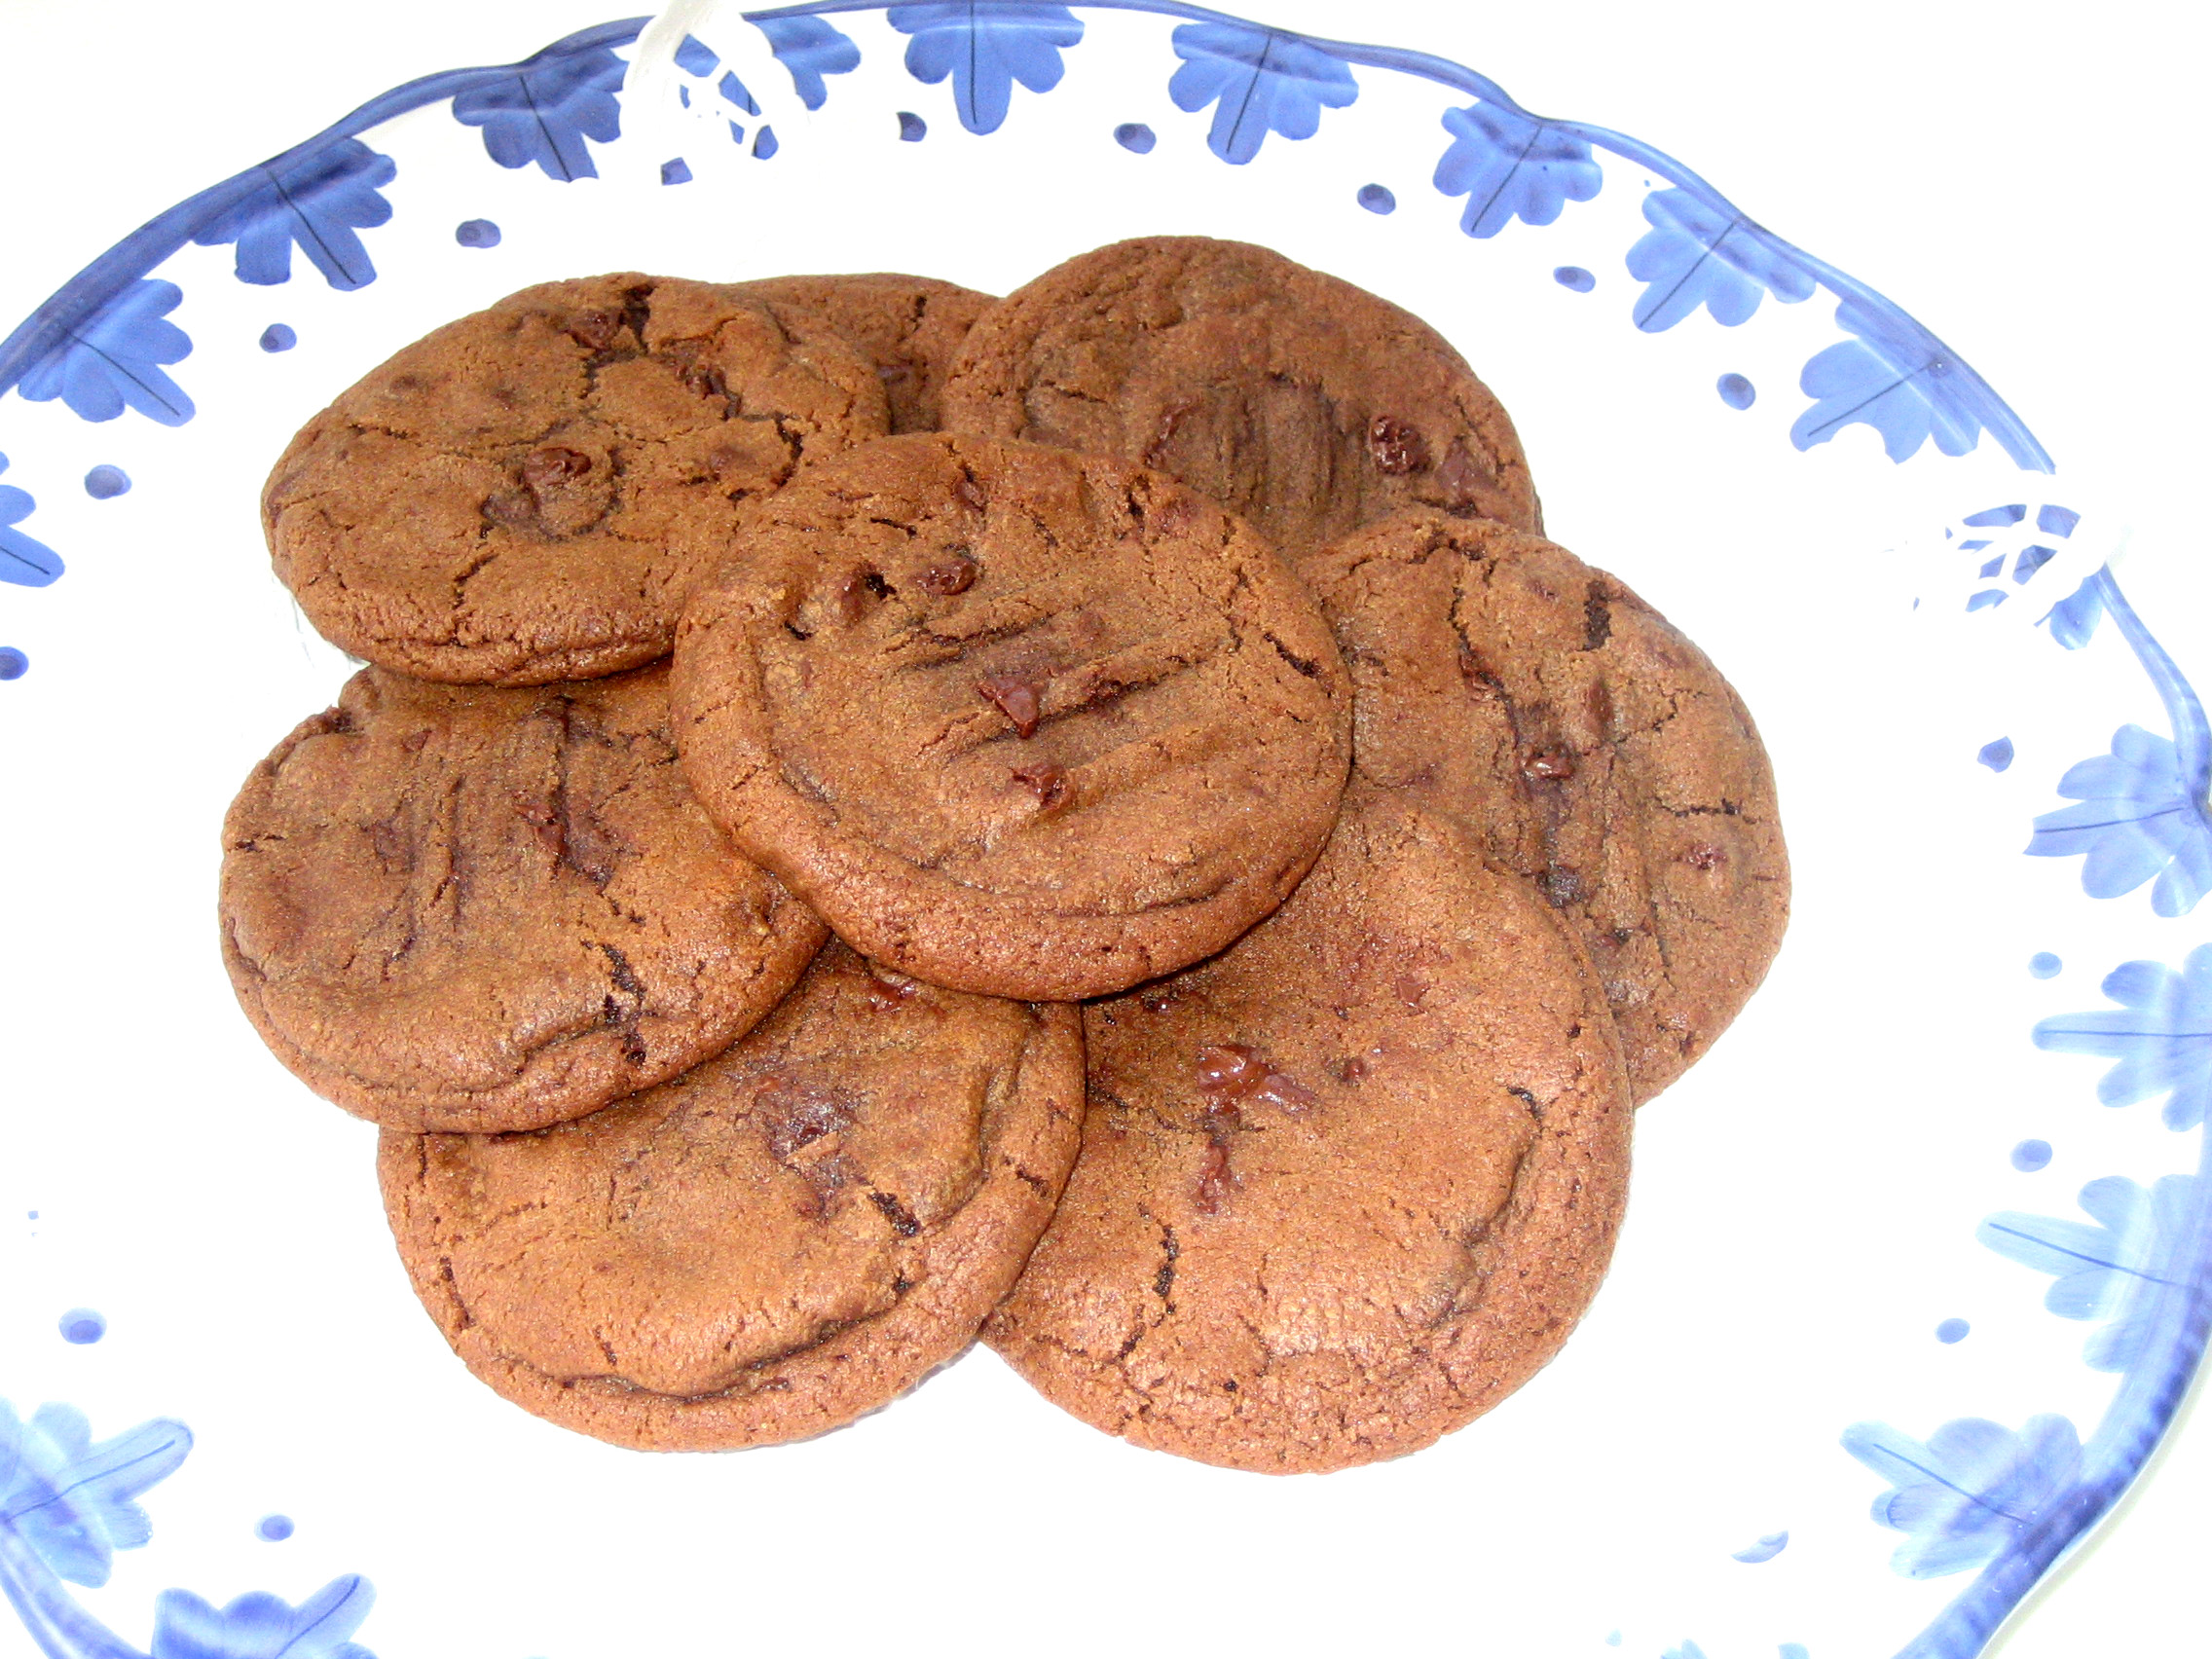 Chewy Chocolate, Chocolate Chip Cookies picture